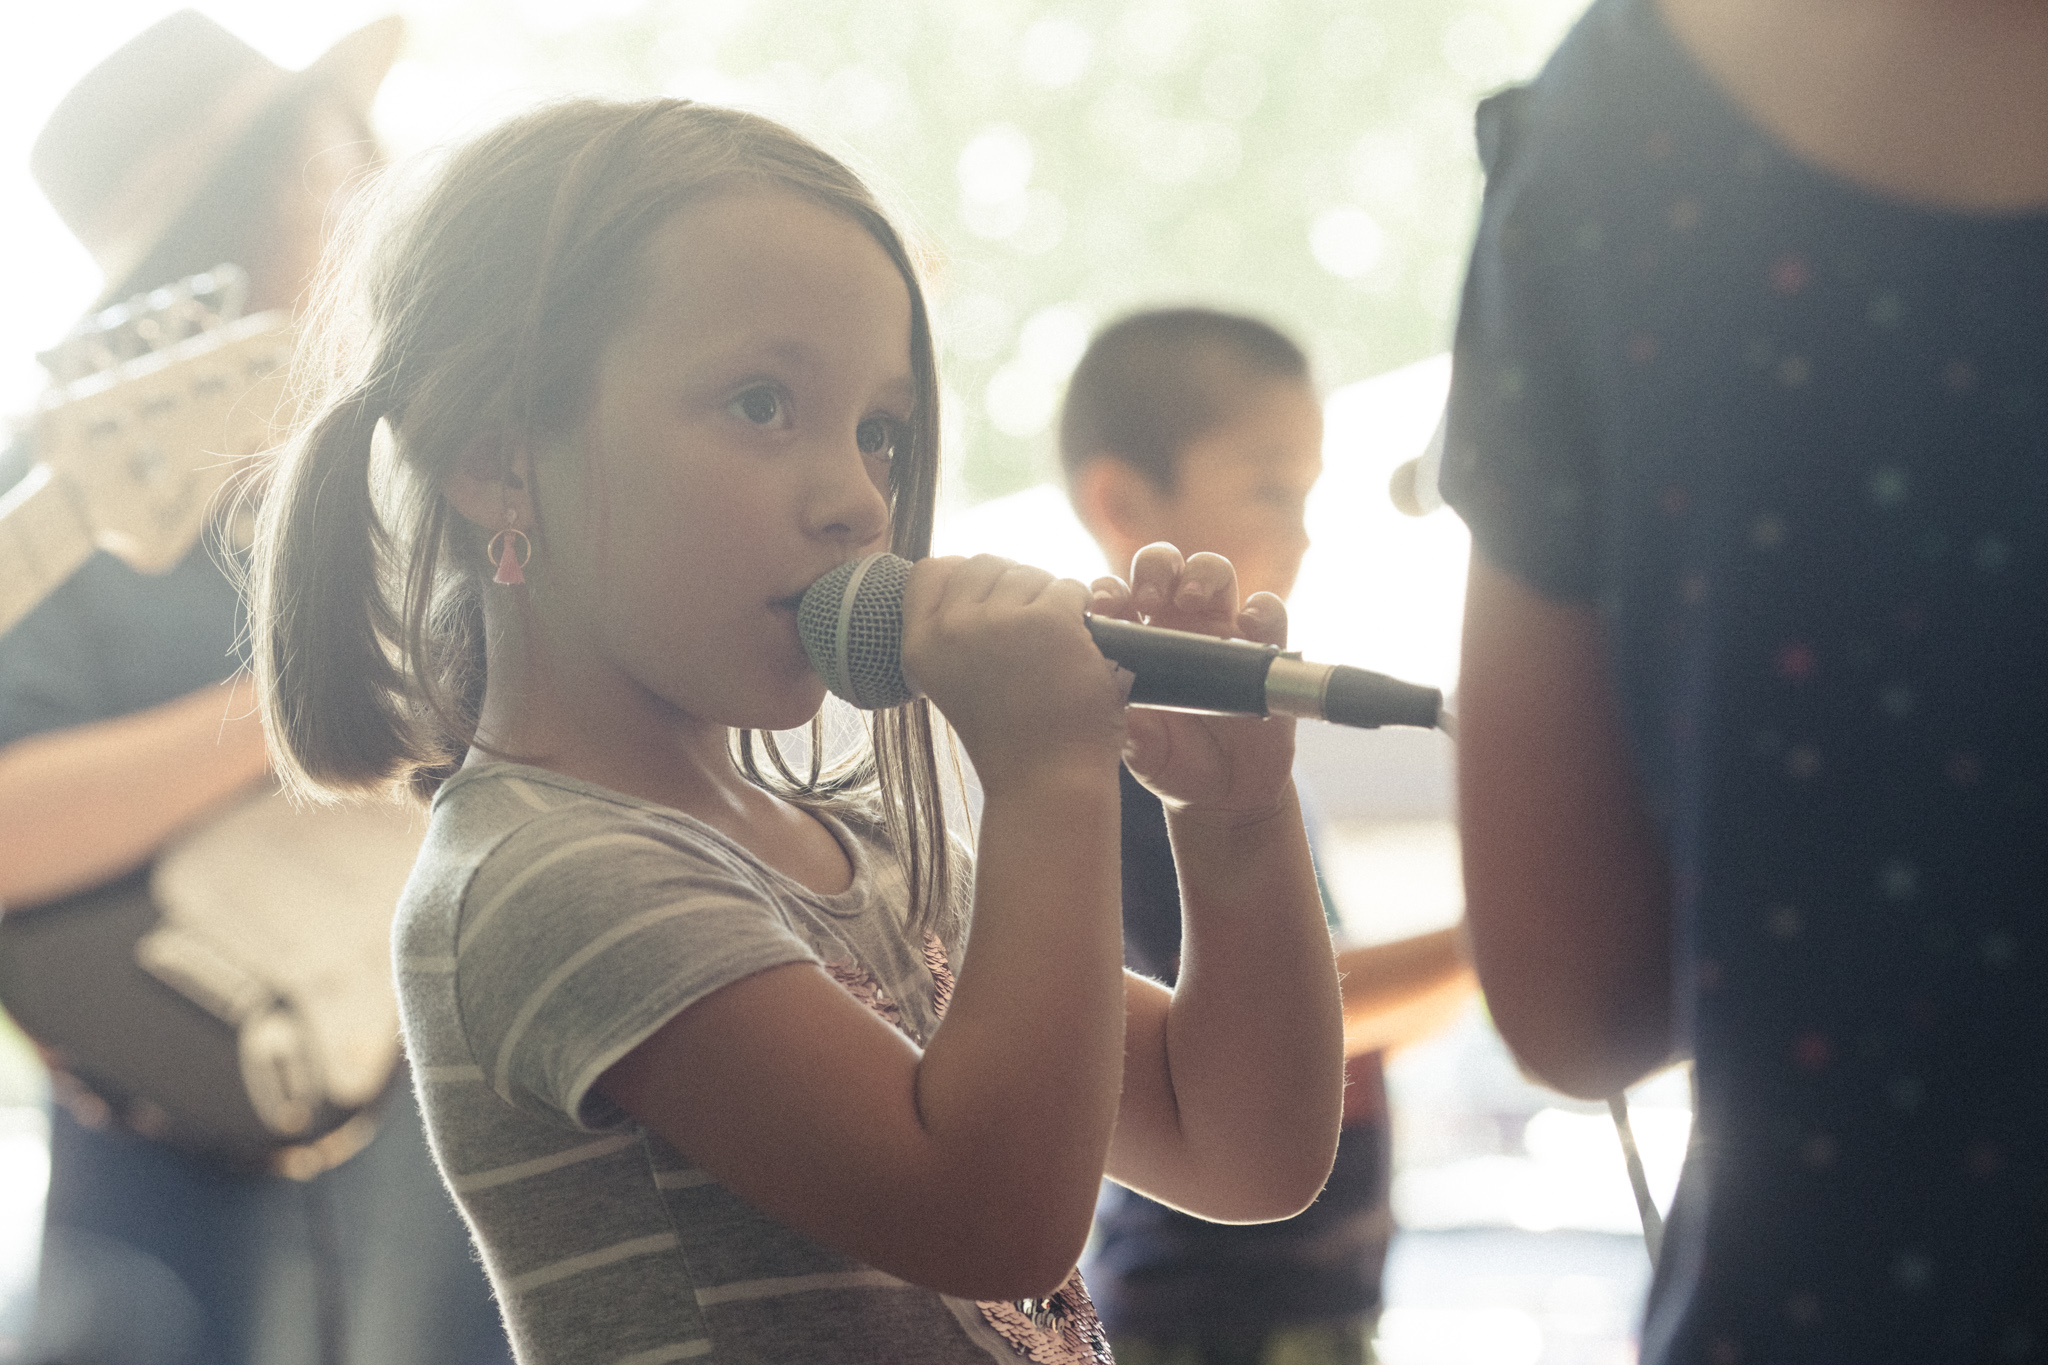 Enroll Now - Save 20% on any Fall Music Class. Classes for kids, teens, and adults. Hurry Offer ends September 1st.